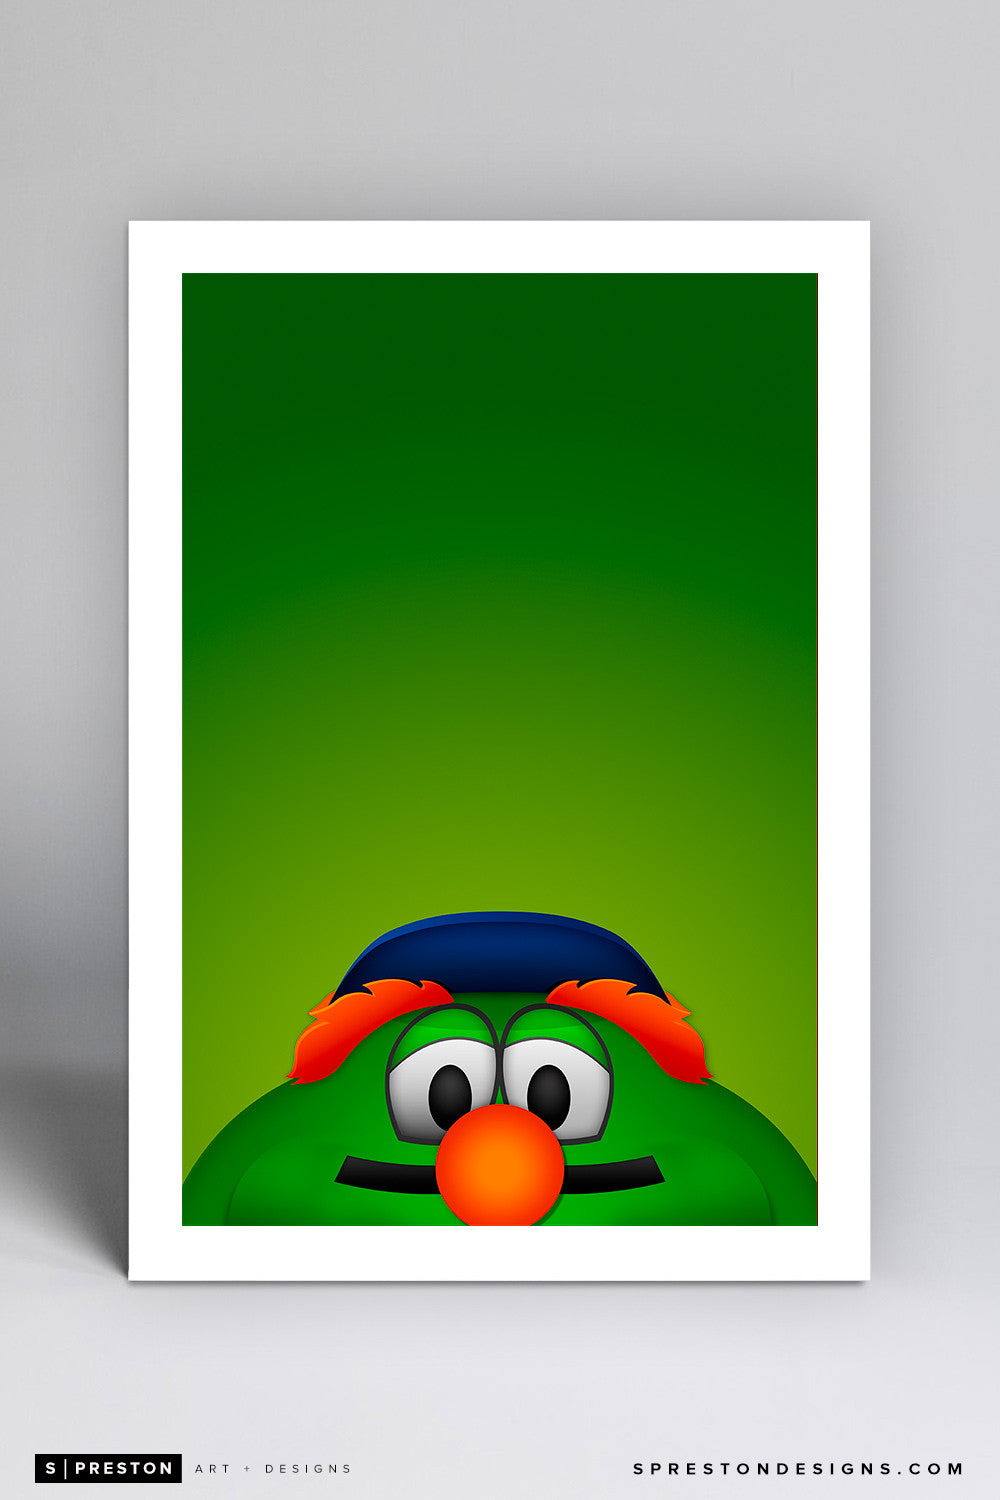 Minimalist Wally the Green Monster Art Print - Boston Red Sox - S. Preston Art + Designs